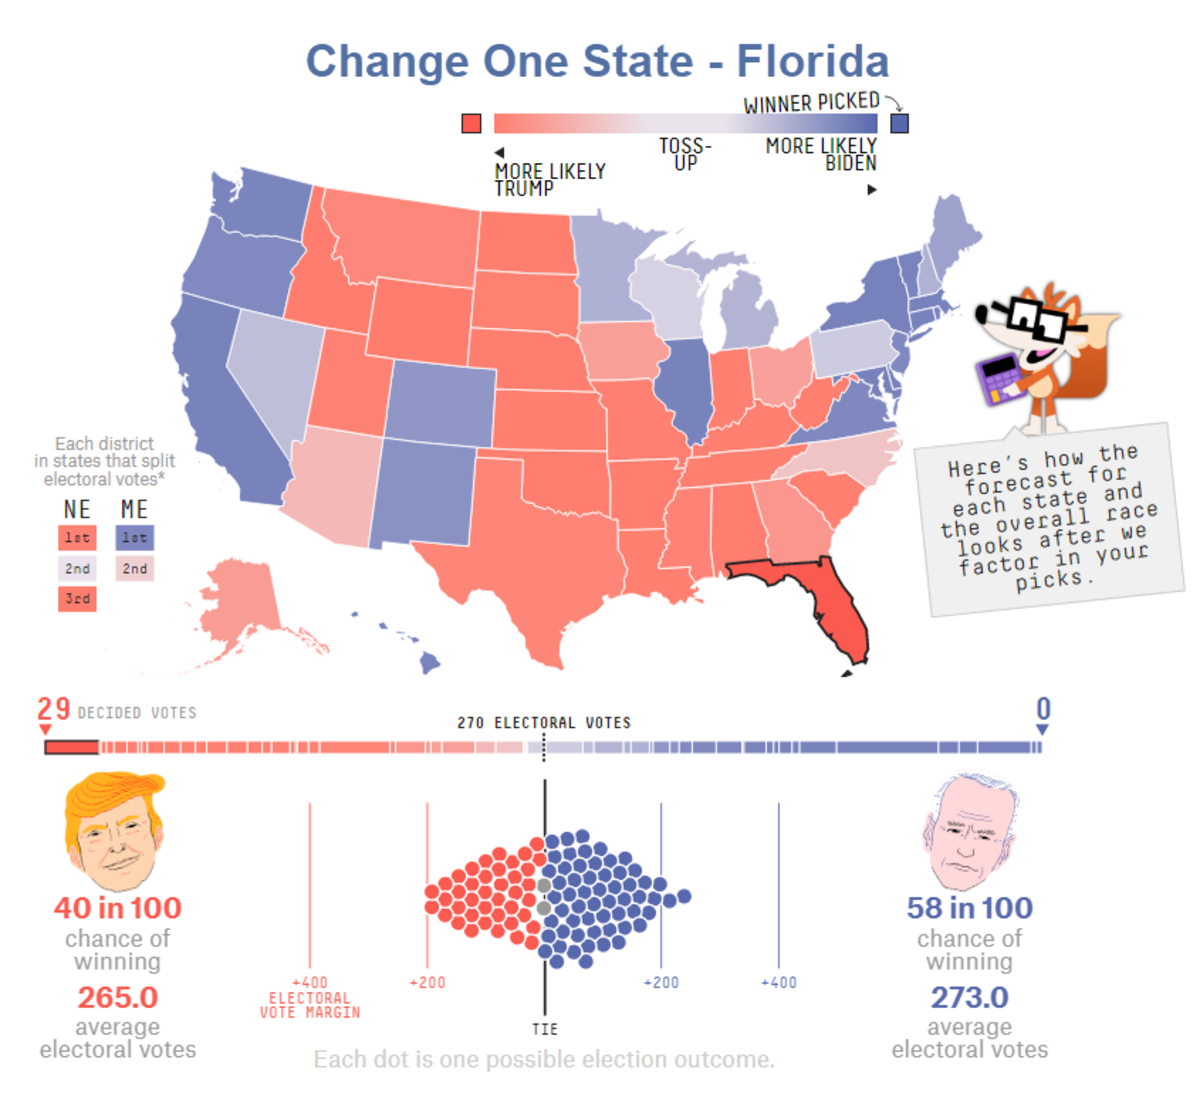 Change in Florida